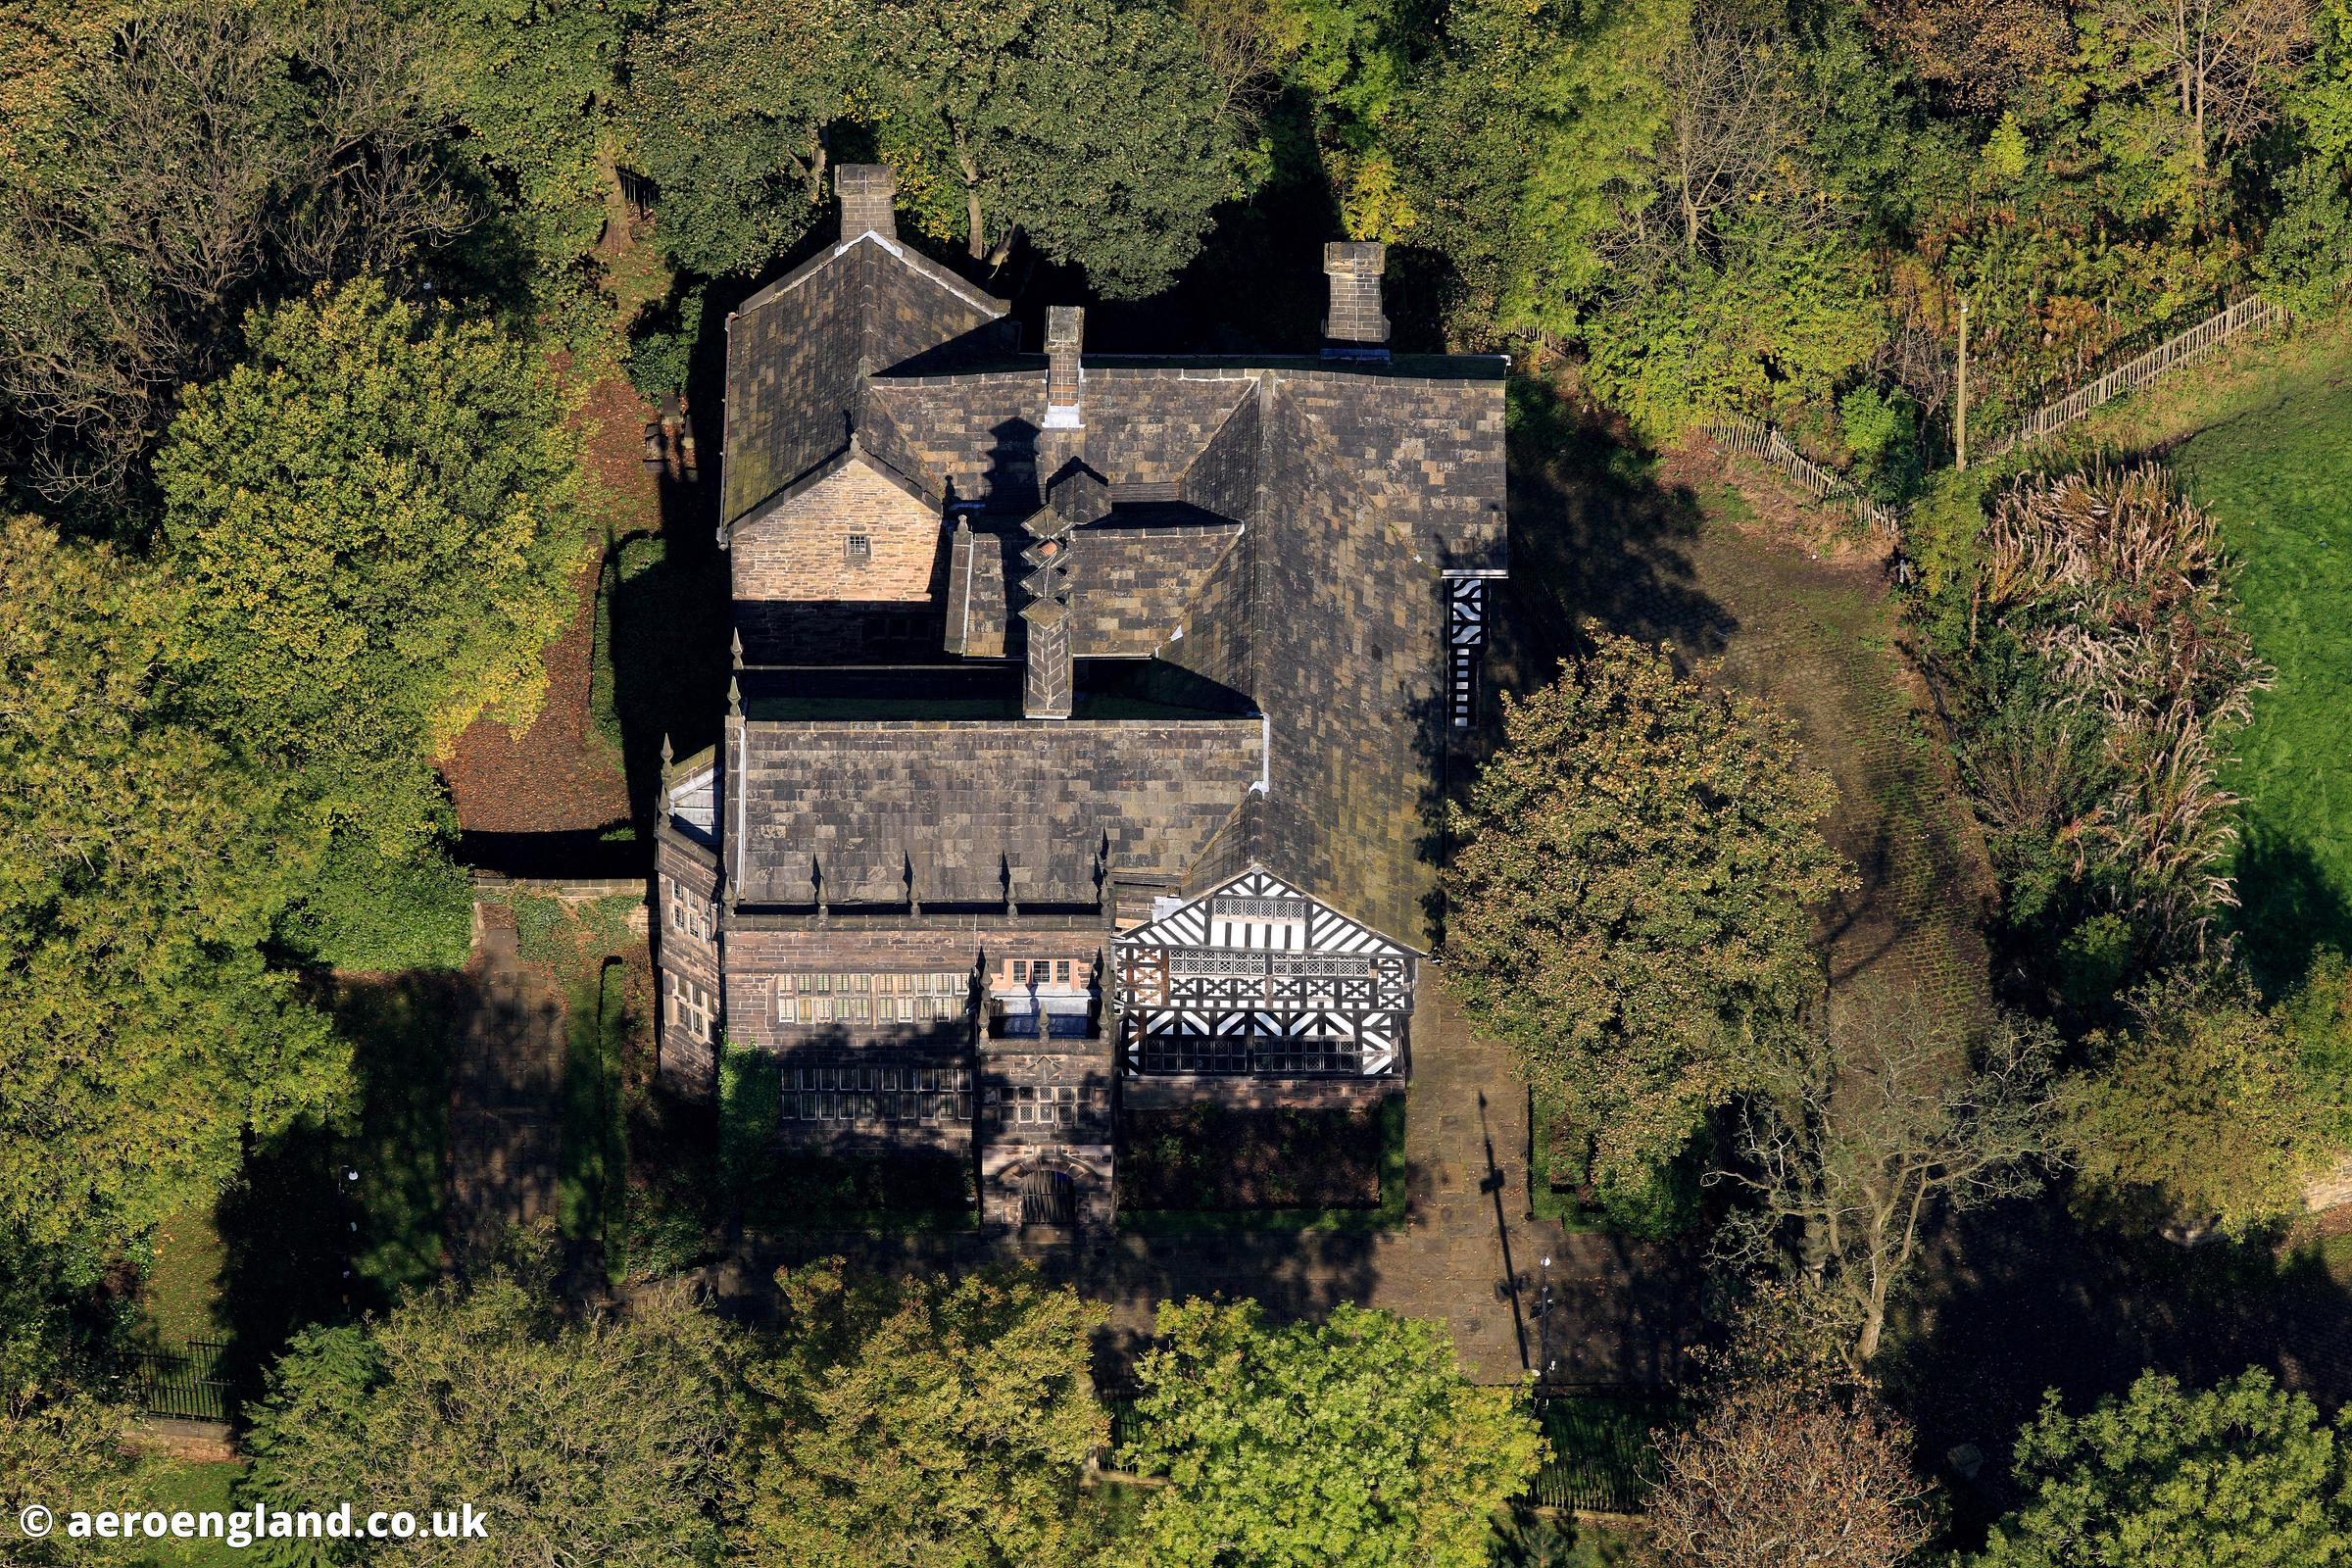 aerial photograph of the Hall i the wood , Bolton Lancashire  England UK